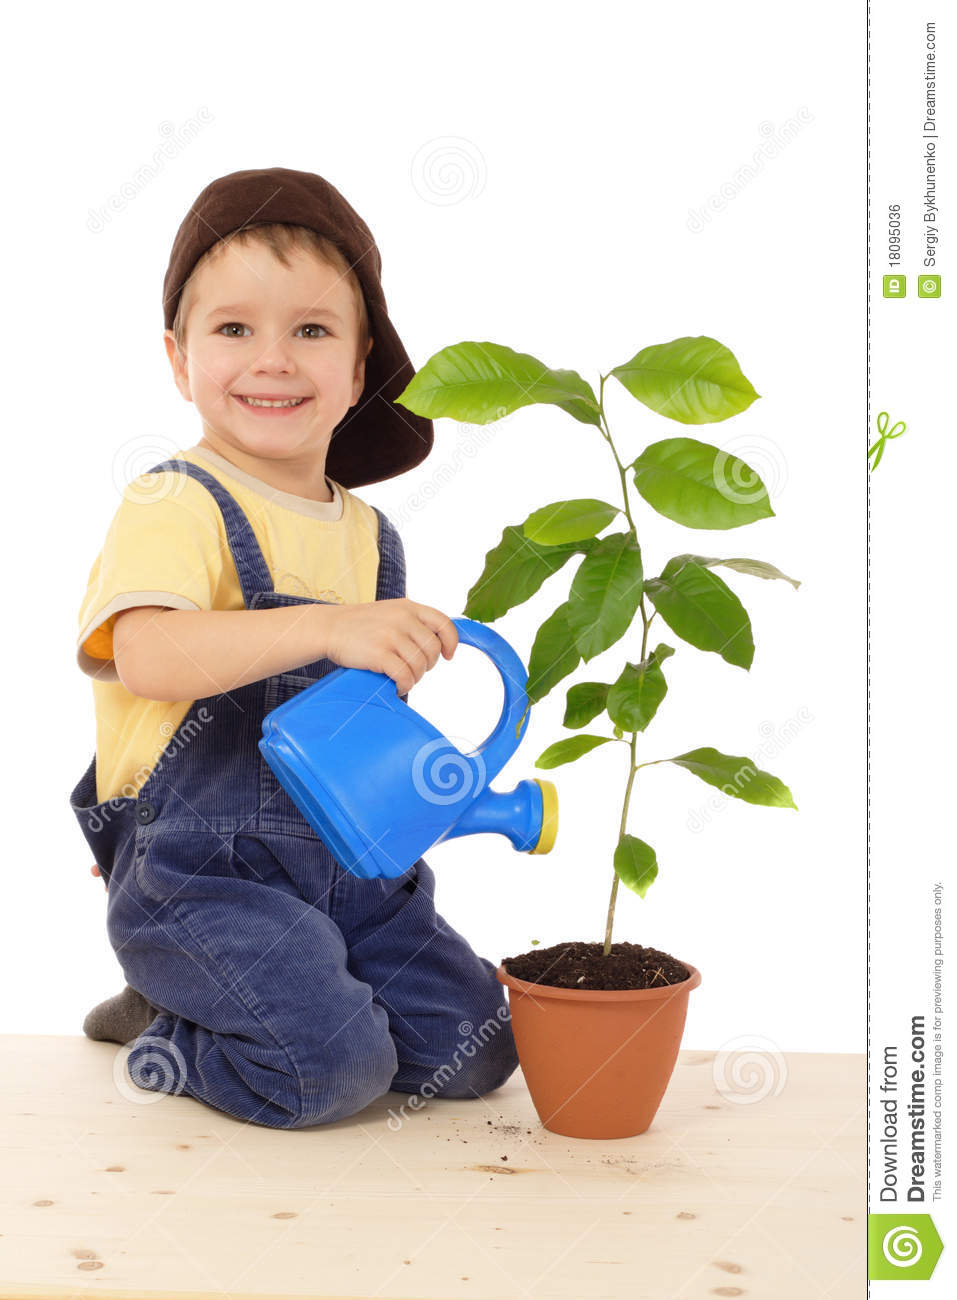 Smiling Little Boy Watering The Plant Royalty Free Stock ...